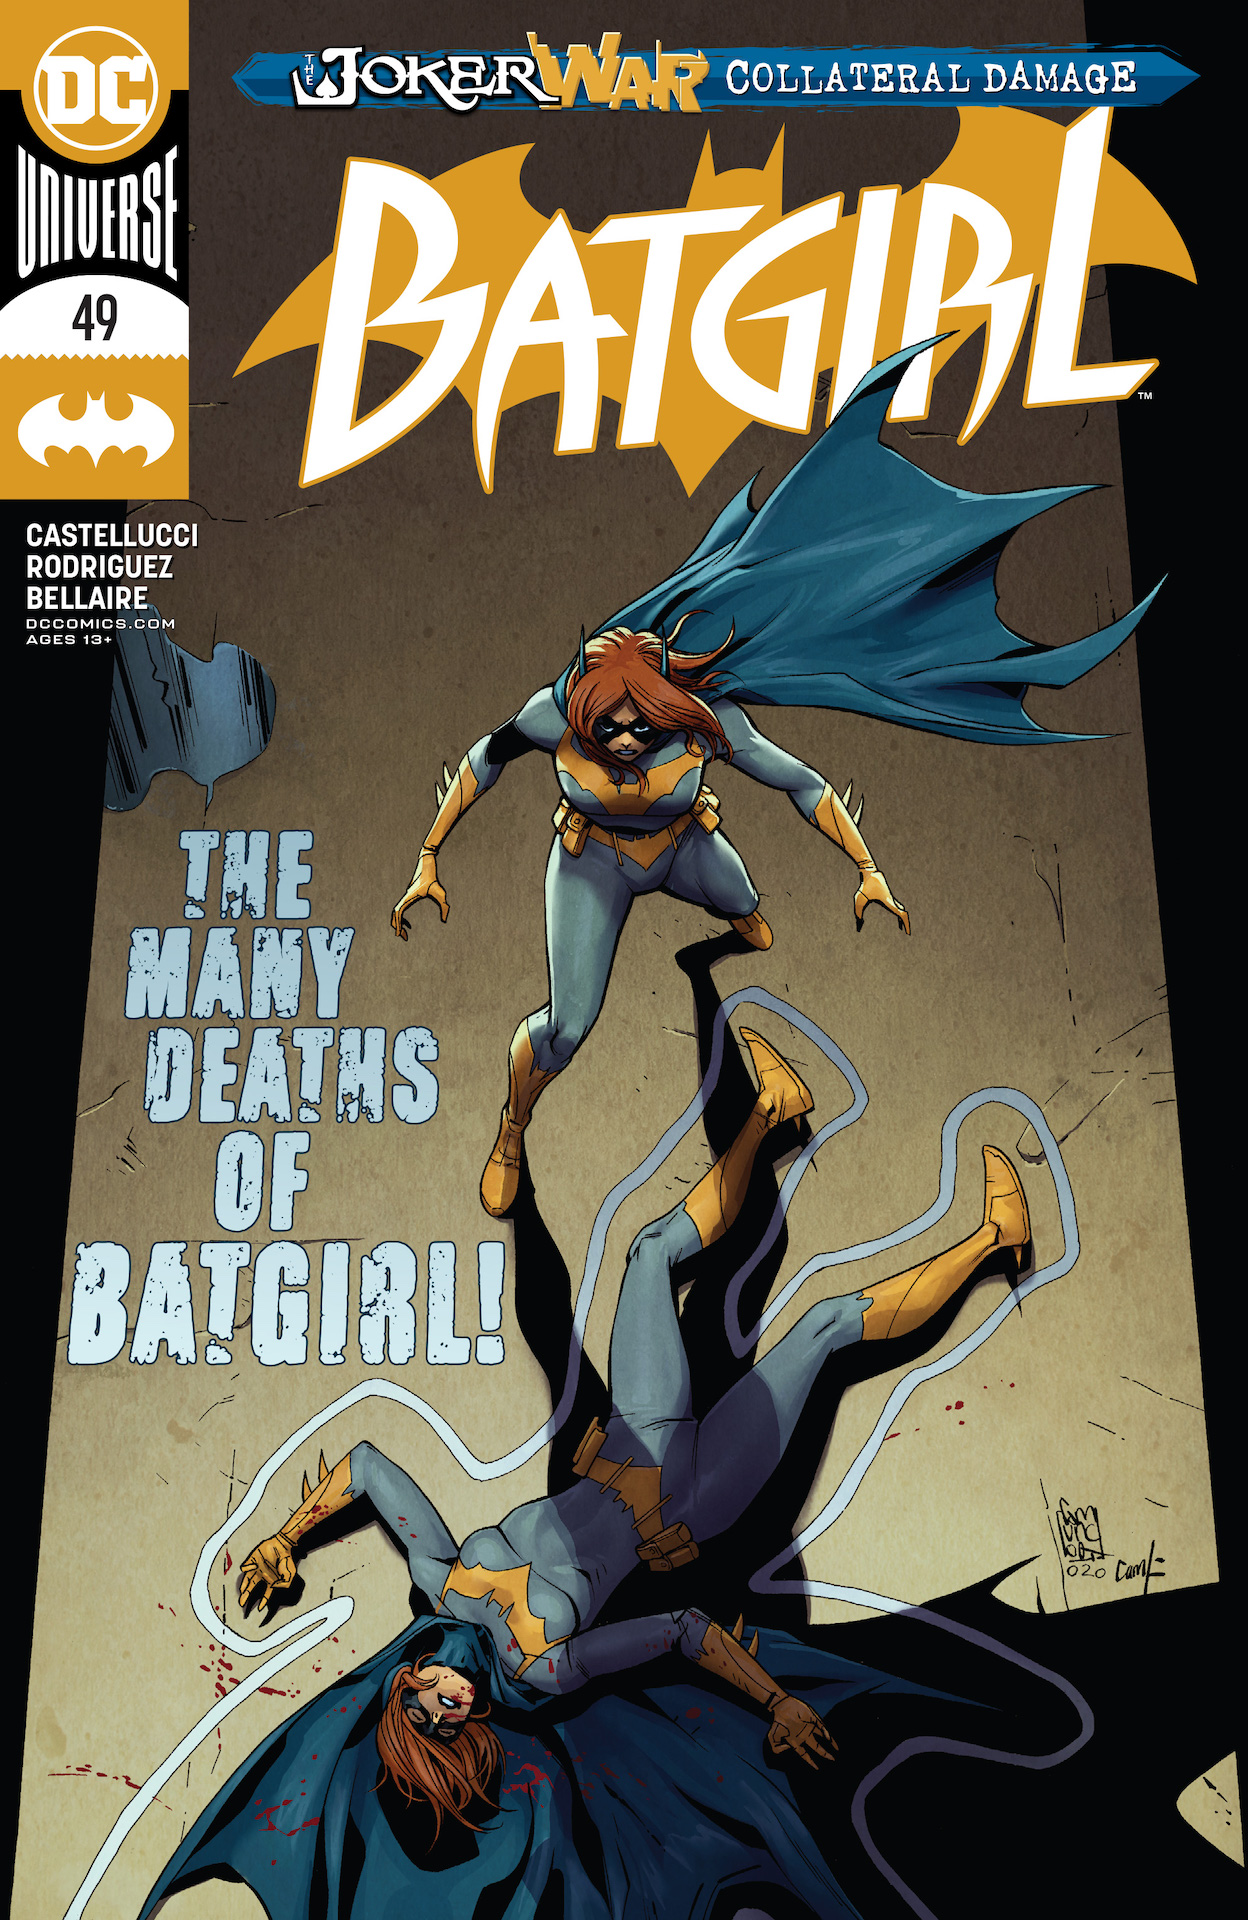 DC Preview: Batgirl #49